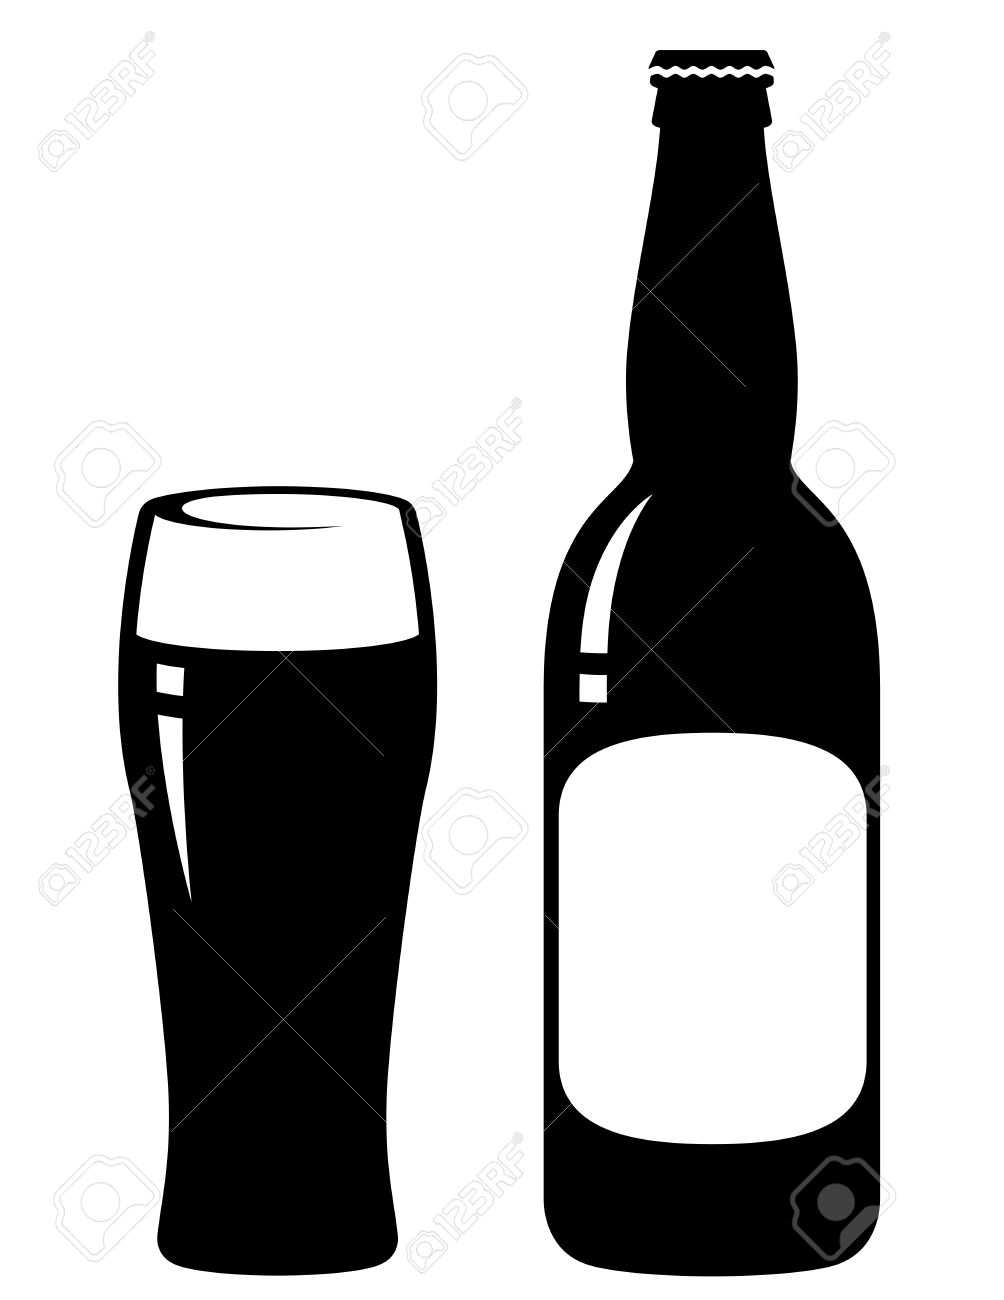 beer bottle and glass with blank label royalty free cliparts rh 123rf com beer bottle vector silhouette beer bottle vector free